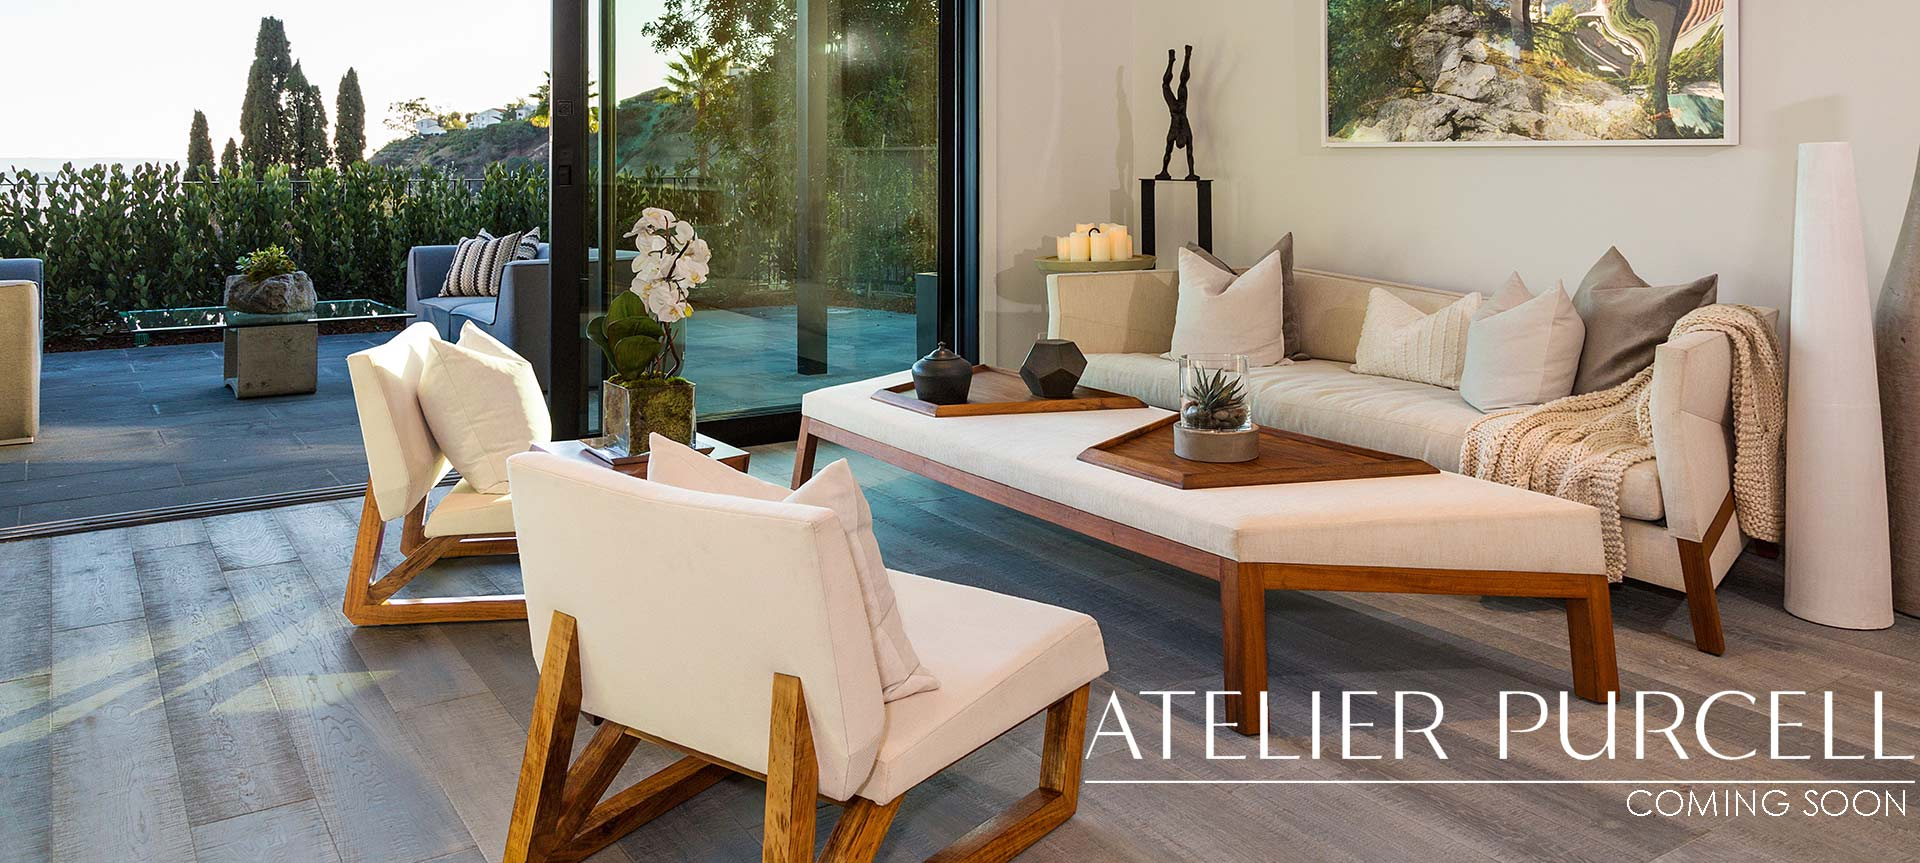 Atelier Purcell Luxury furniture collection coming soon